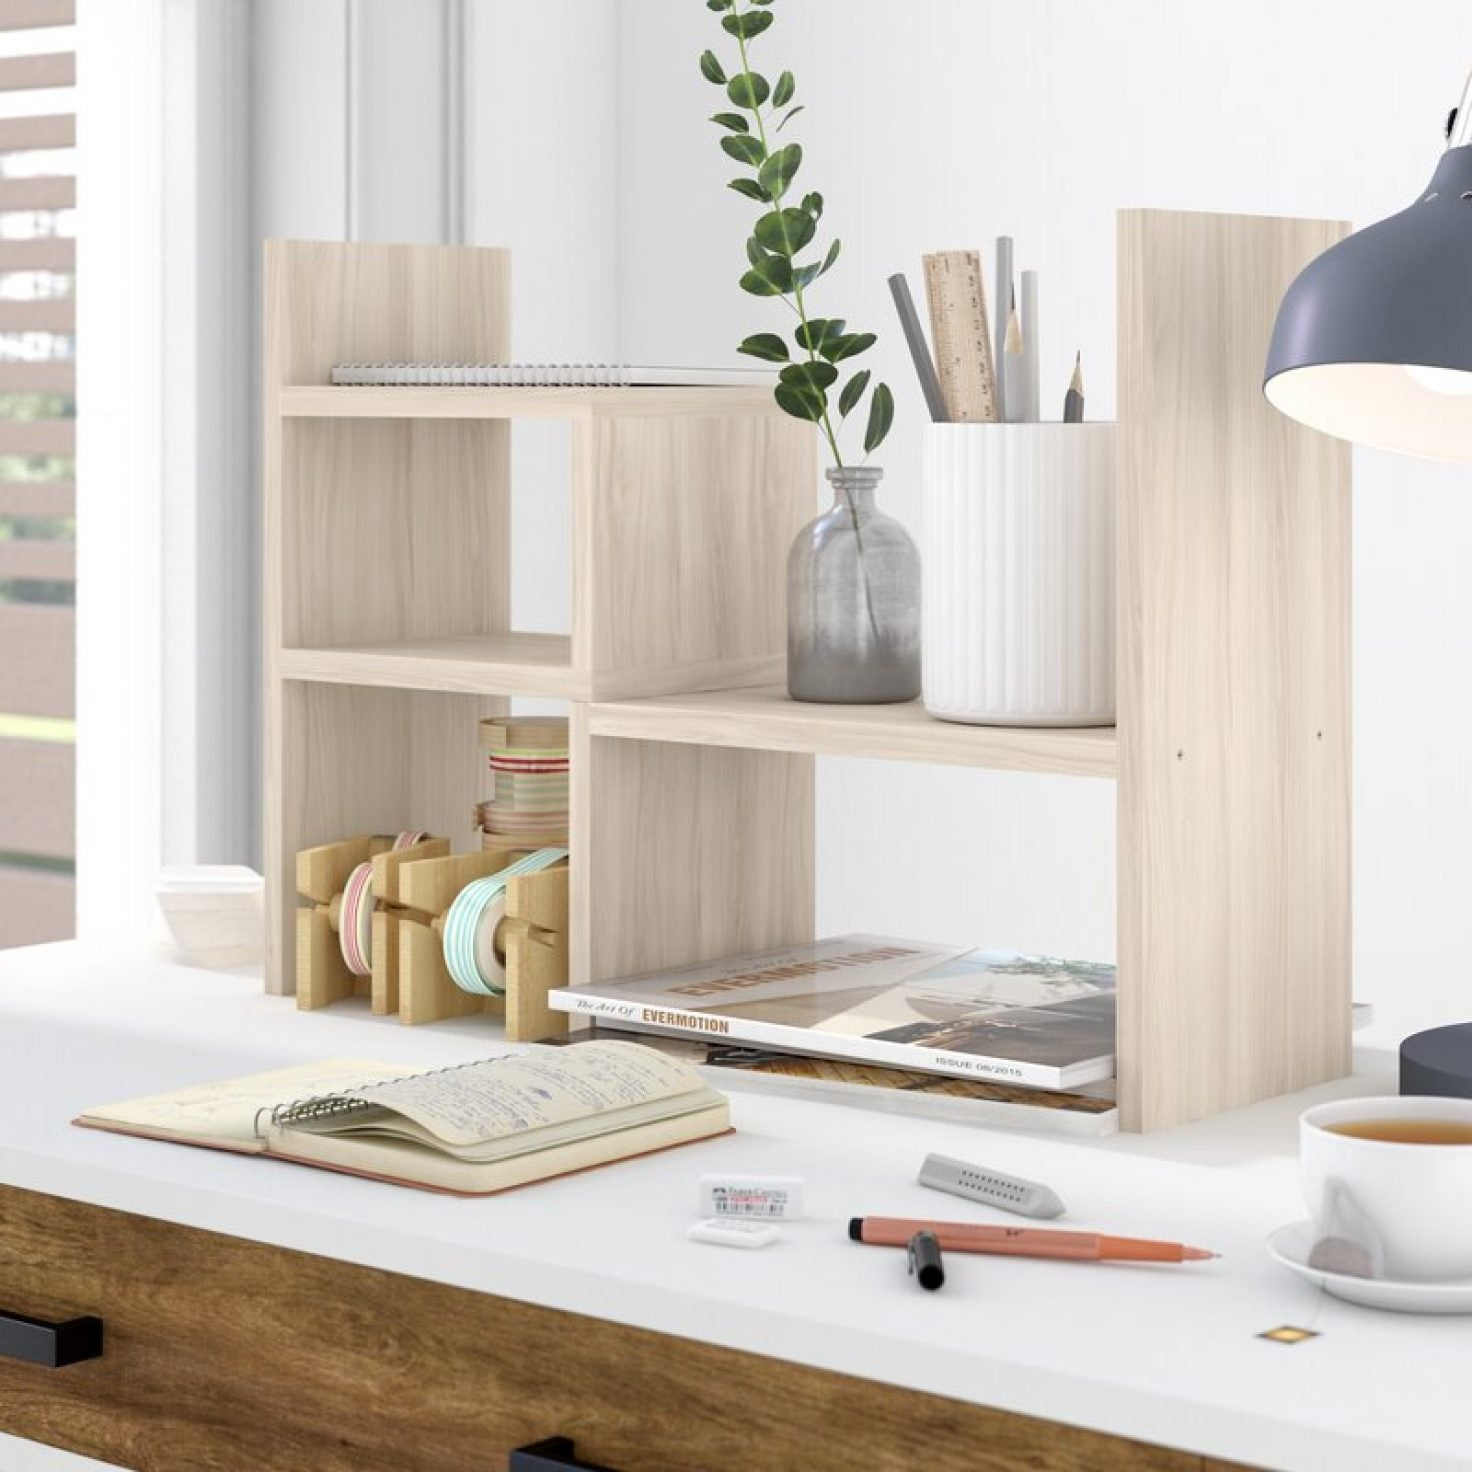 Get Your Work Space Together With These Chic Organizers